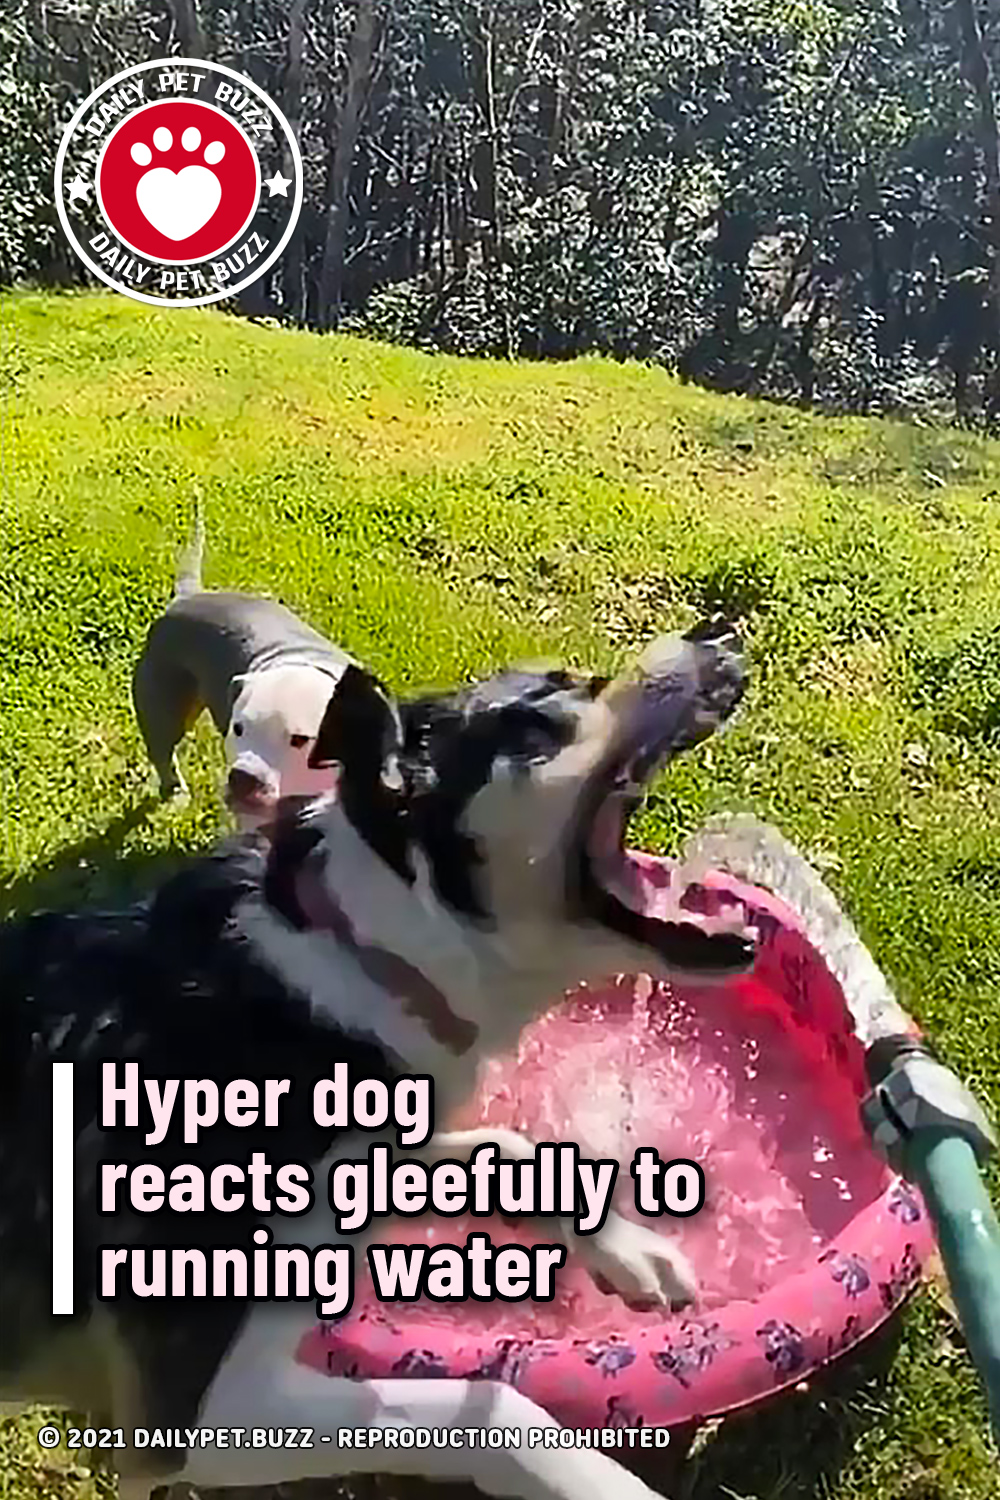 Hyper dog reacts gleefully to running water